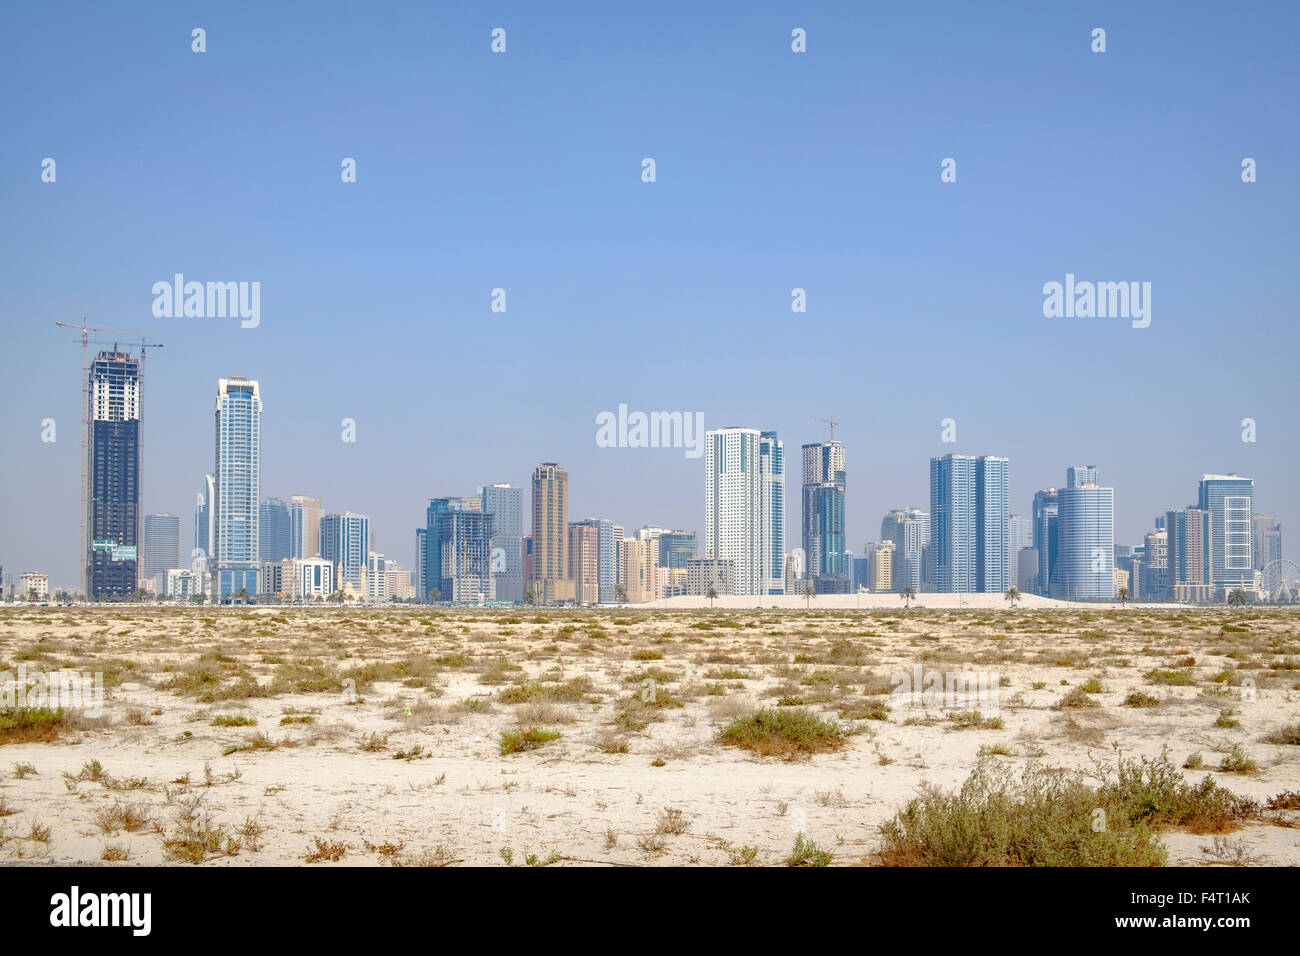 Daytime skyline view of  modern high-rise apartment buildings from desert  in Sharjah United Arab Emirates - Stock Image